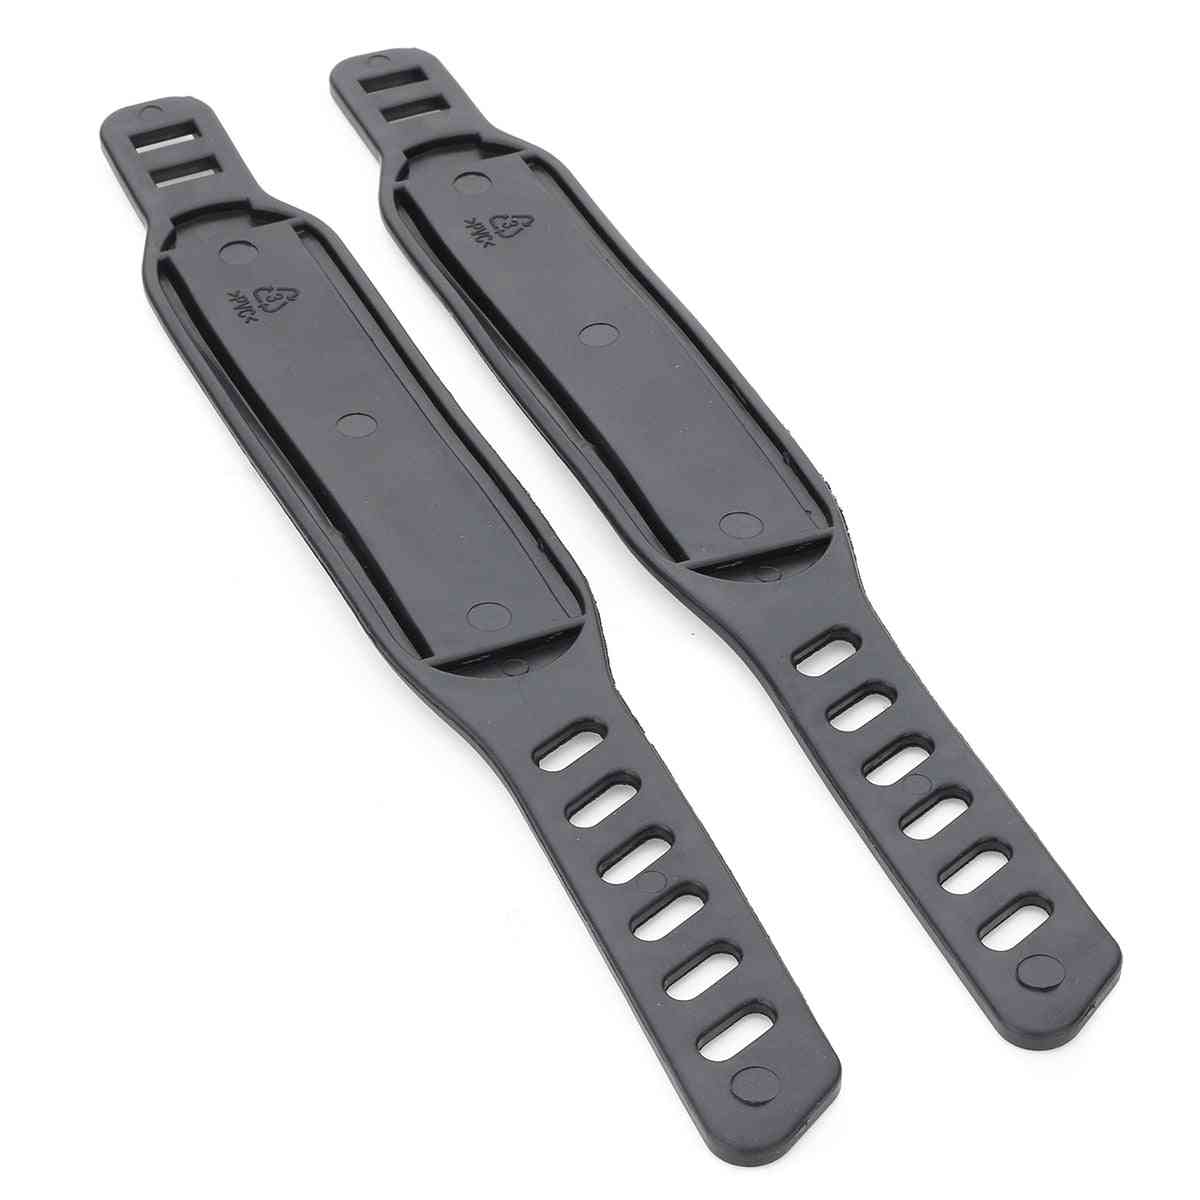 Universal And Durable Bike Pedal Strap